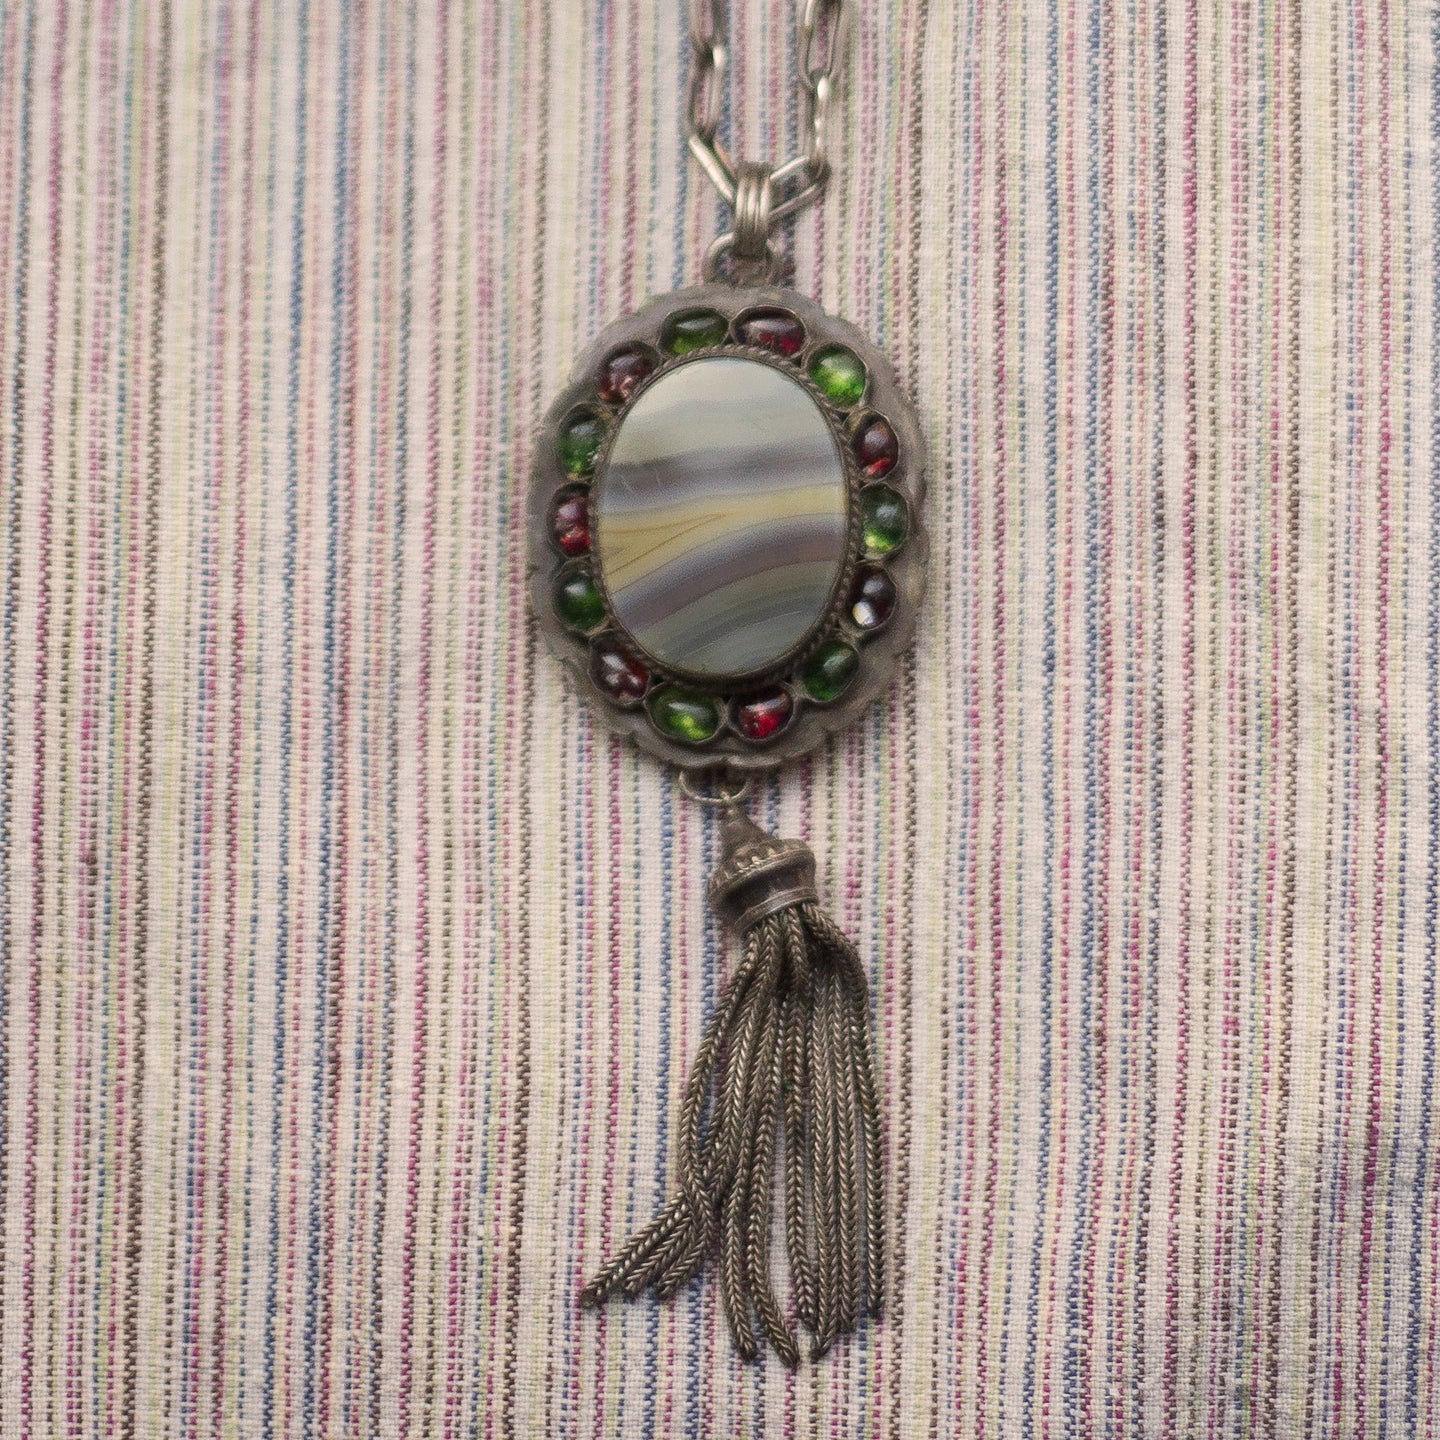 Georgian Agate & Paste Pendant c1800